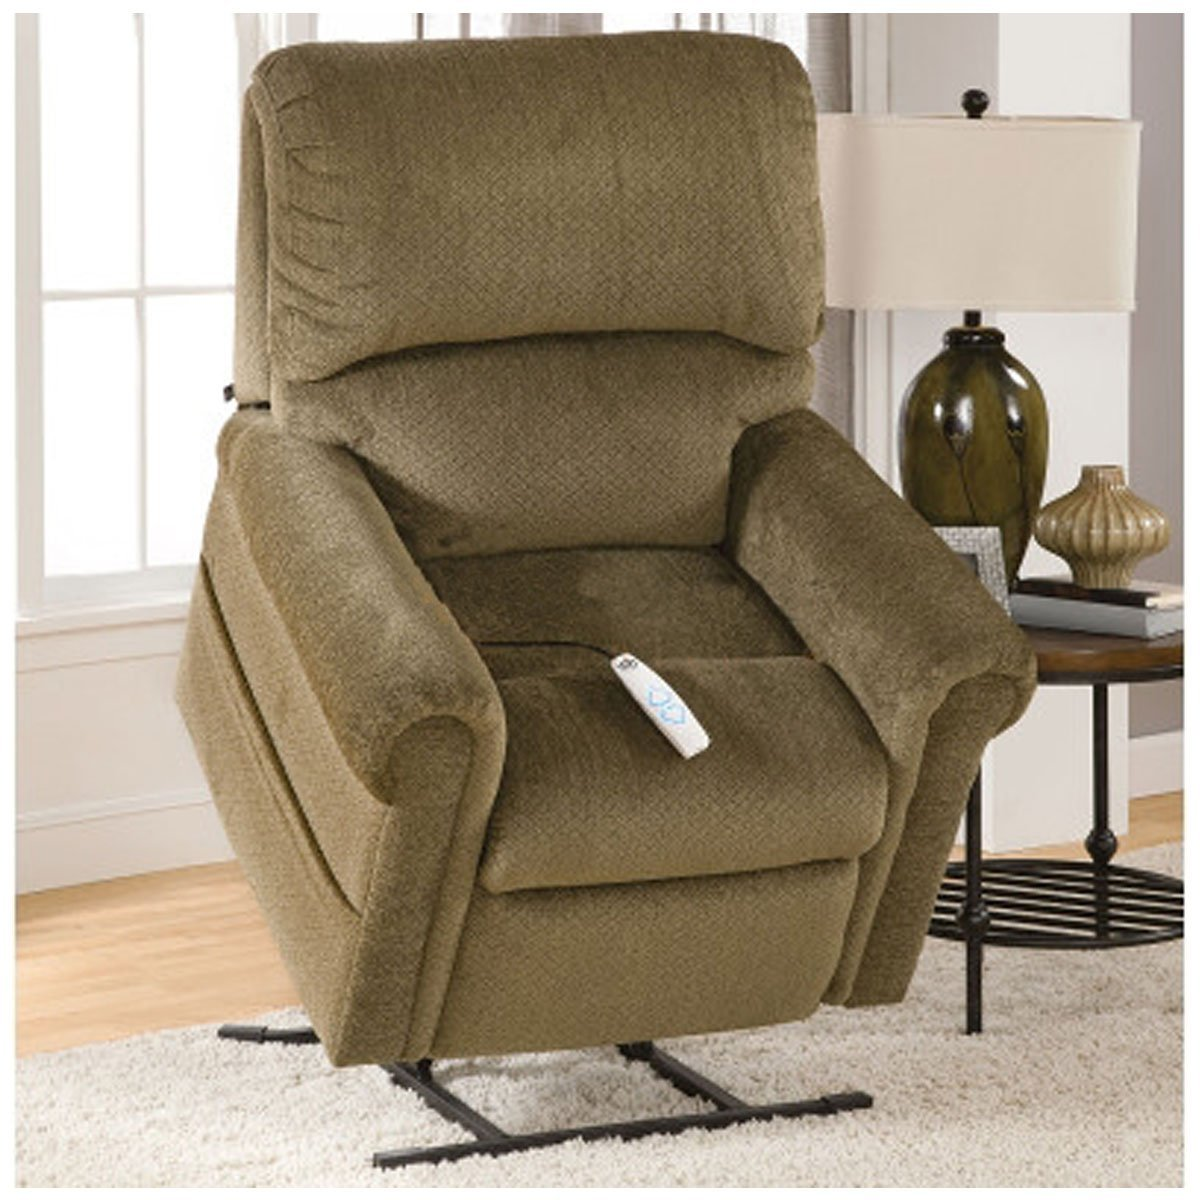 kitchen omni lift recliner lb full power large duty dining thistle heavy chair recliners com capacity dp amazon out catnapper lay